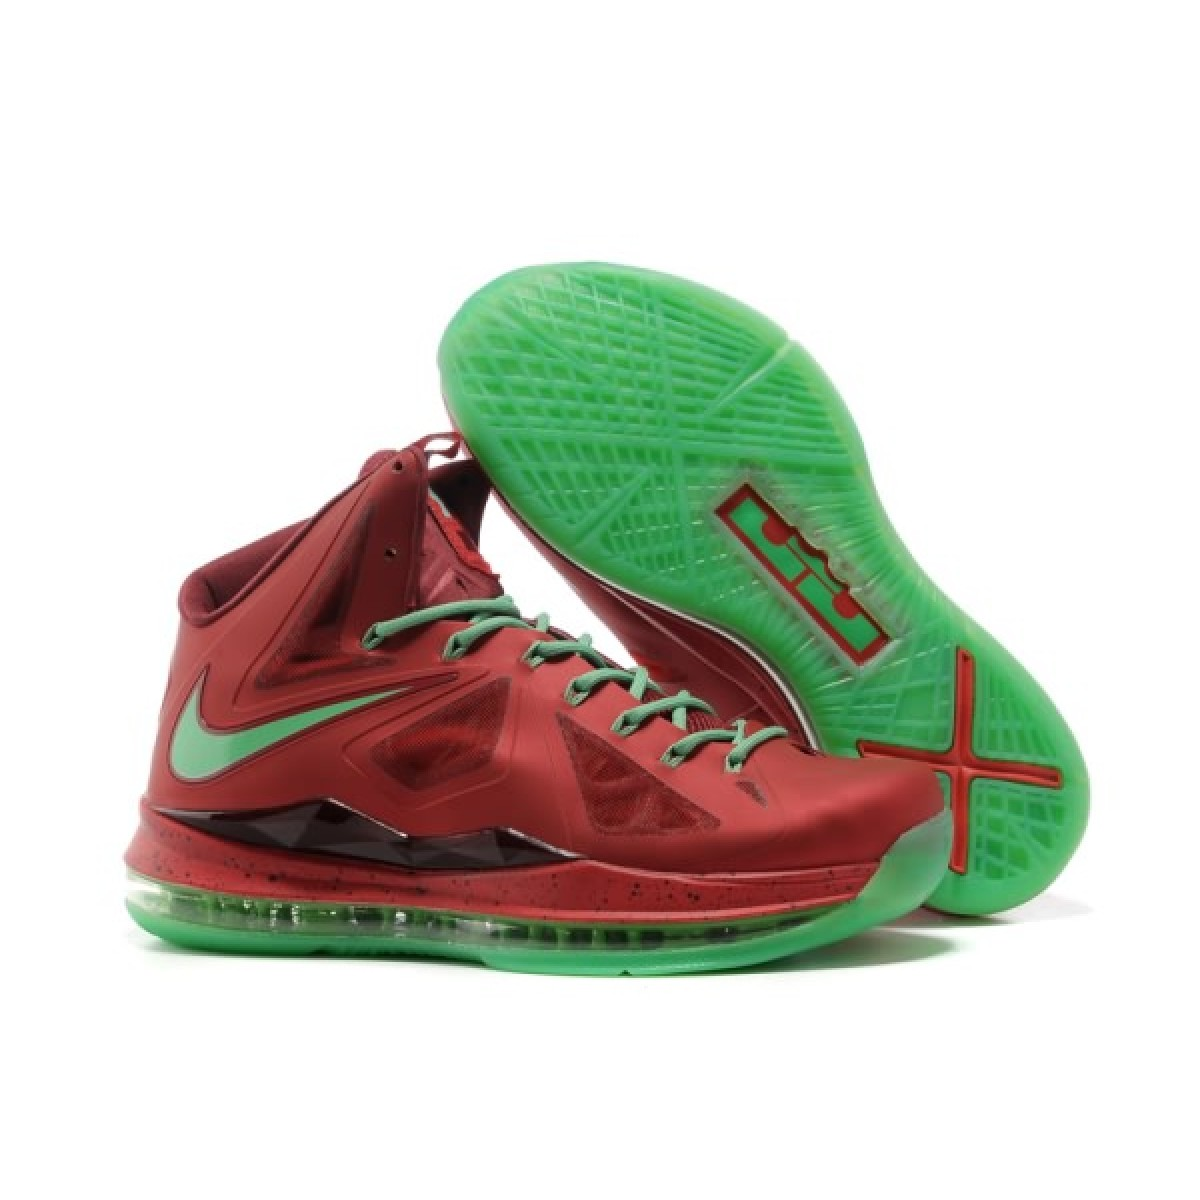 Original Nike Lebron 10 Red Green Sneaker